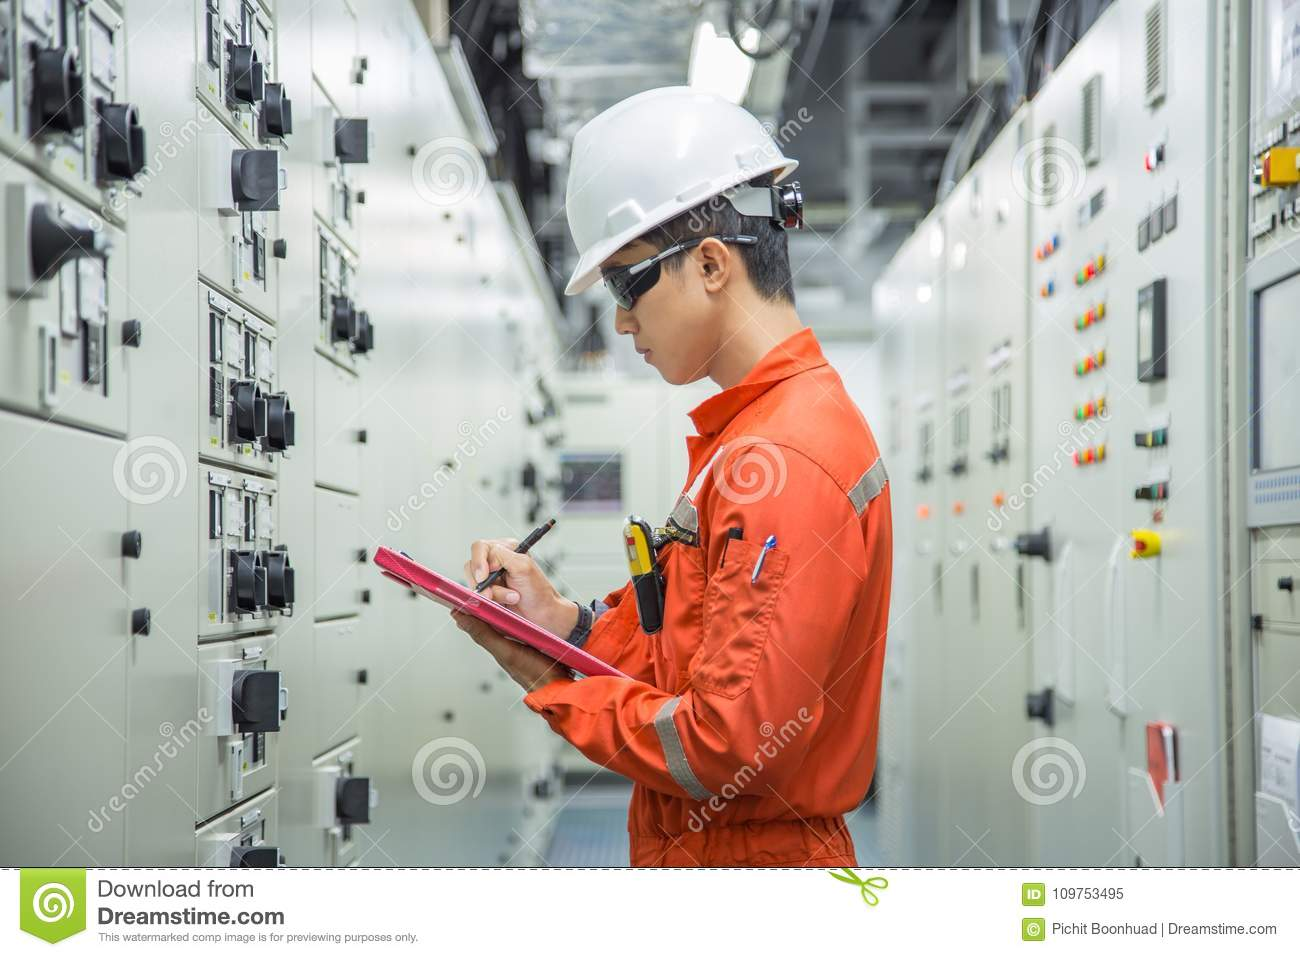 Electrical and Instrument technician logging data in electrical switch gear room.